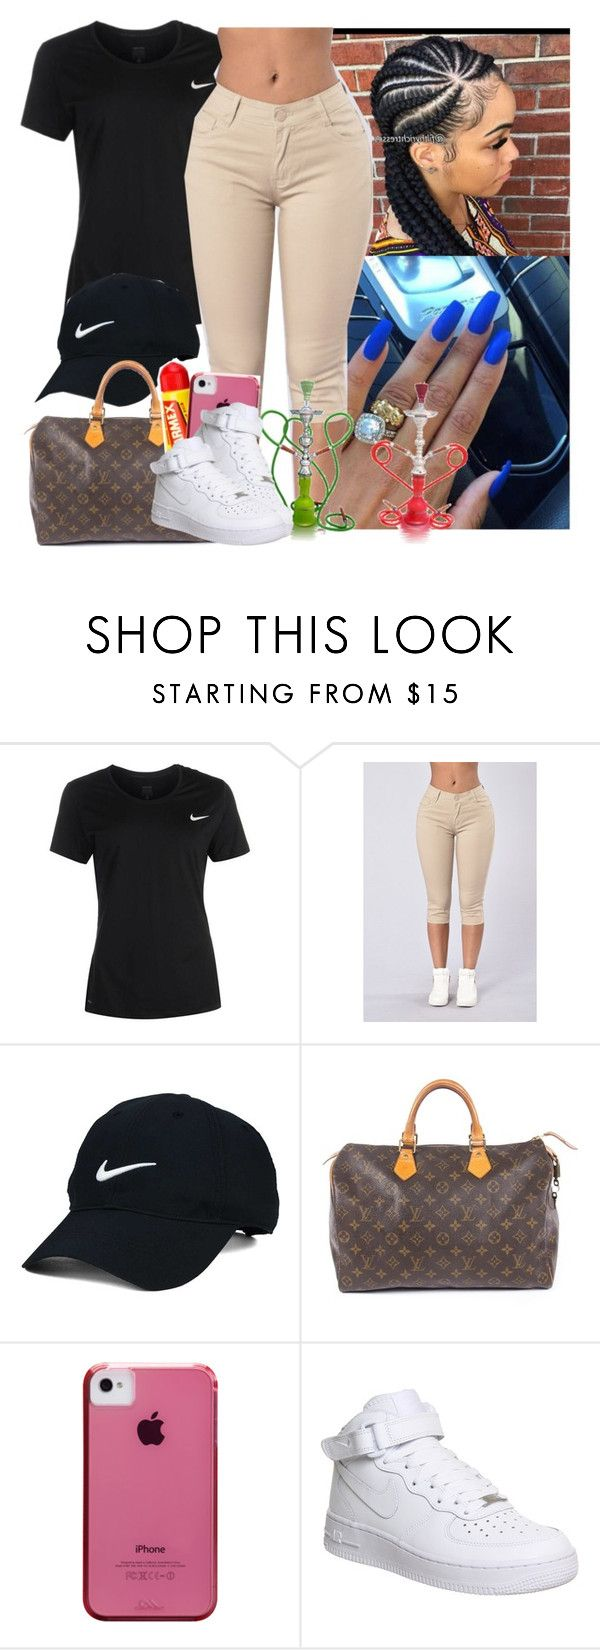 """House Party ✔️✔️✔️"" by saucinonyou999 ❤ liked on Polyvore featuring NIKE, Nike Golf, Louis Vuitton, Carmex and Case-Mate"